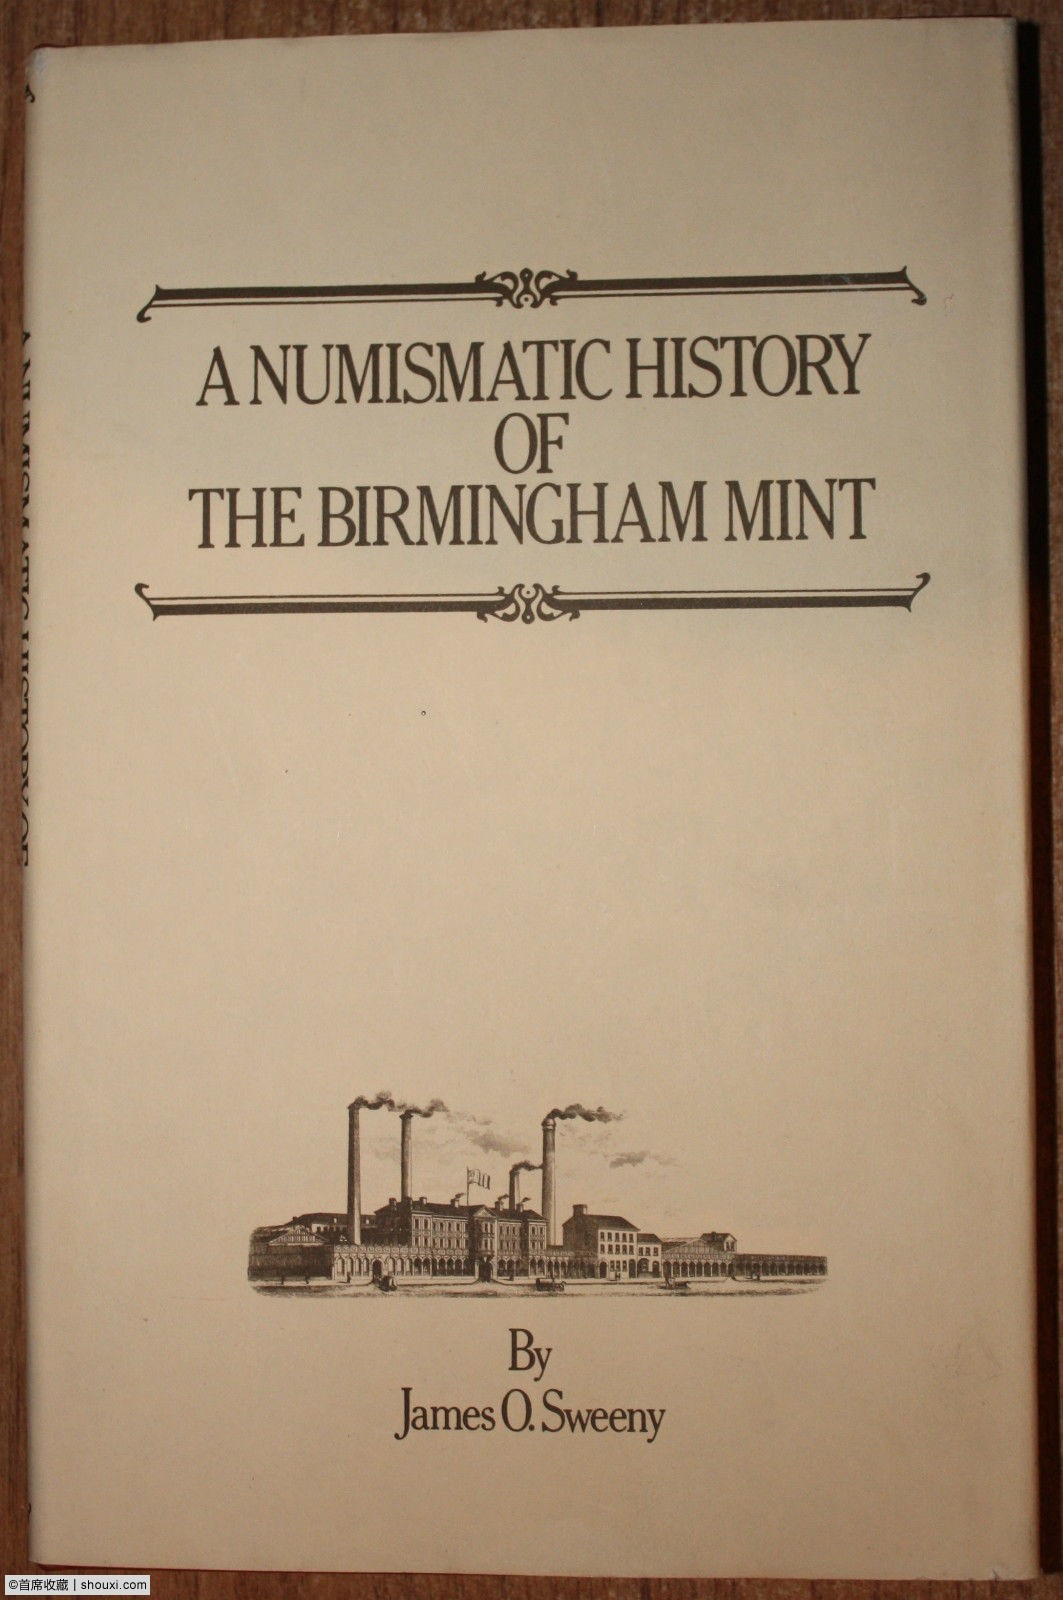 Numismatic History of the Birmingham Mint by James O. Sweeny MS1.JPG